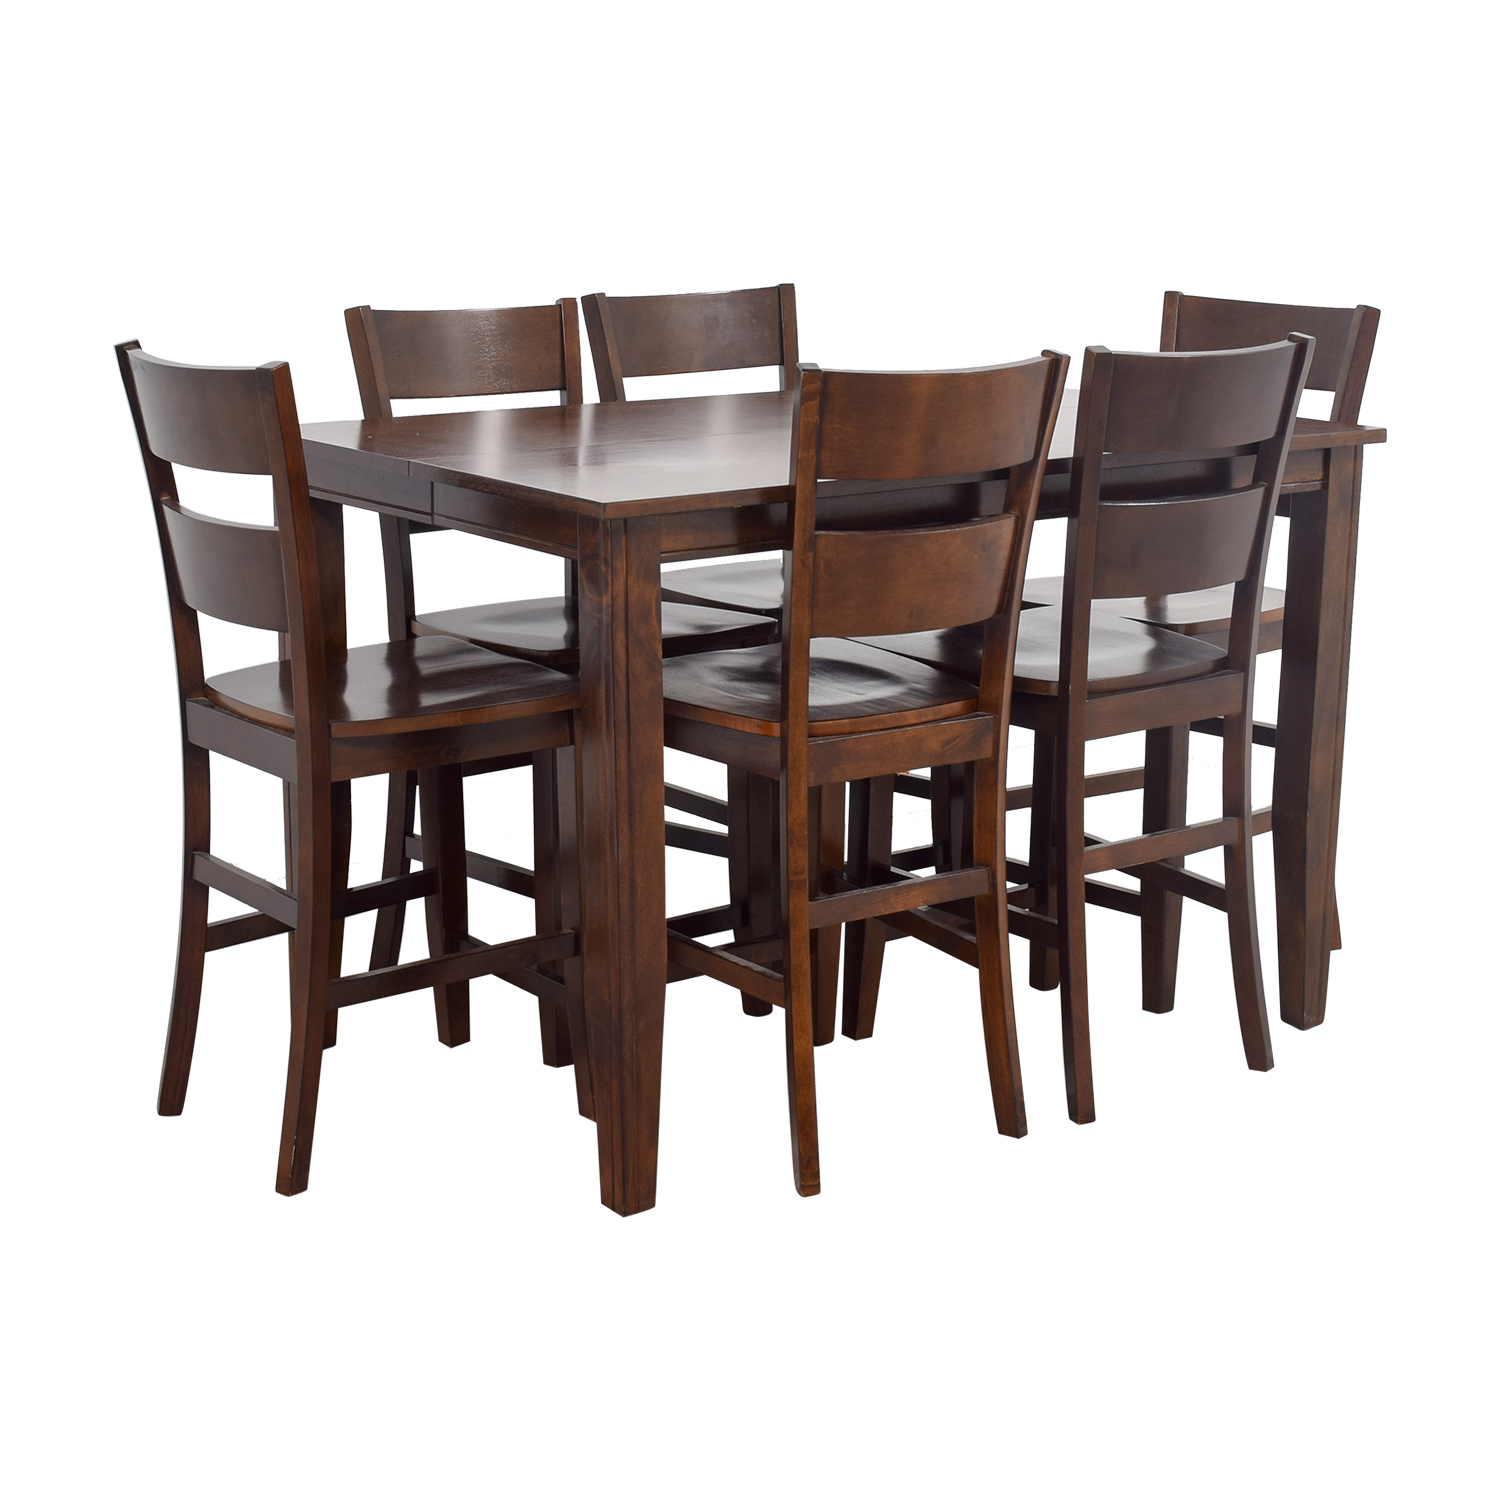 Bobs Furniture Bobs Furniture Wood Pub Dining Set discount